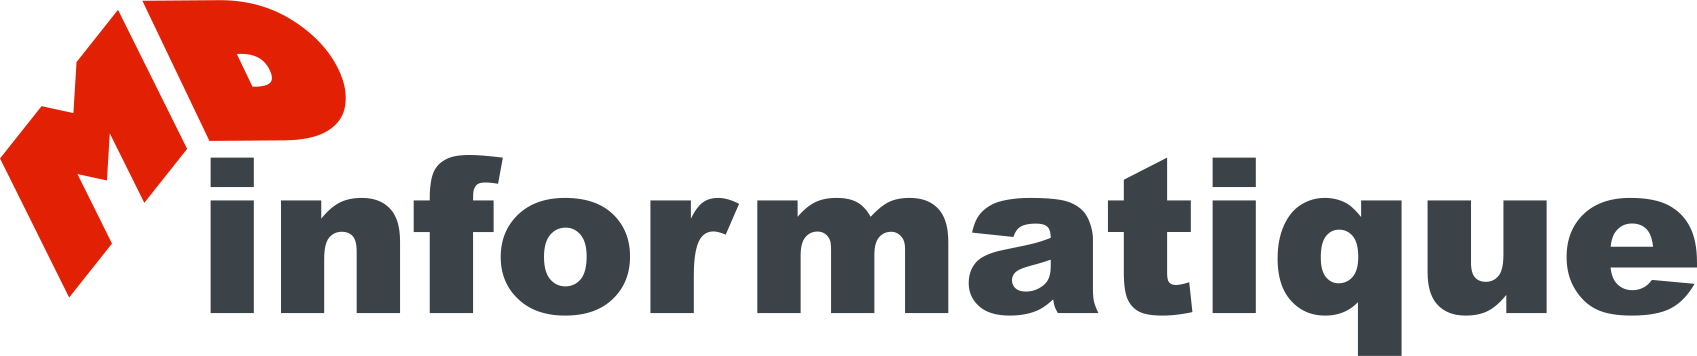 MD Informatique logo